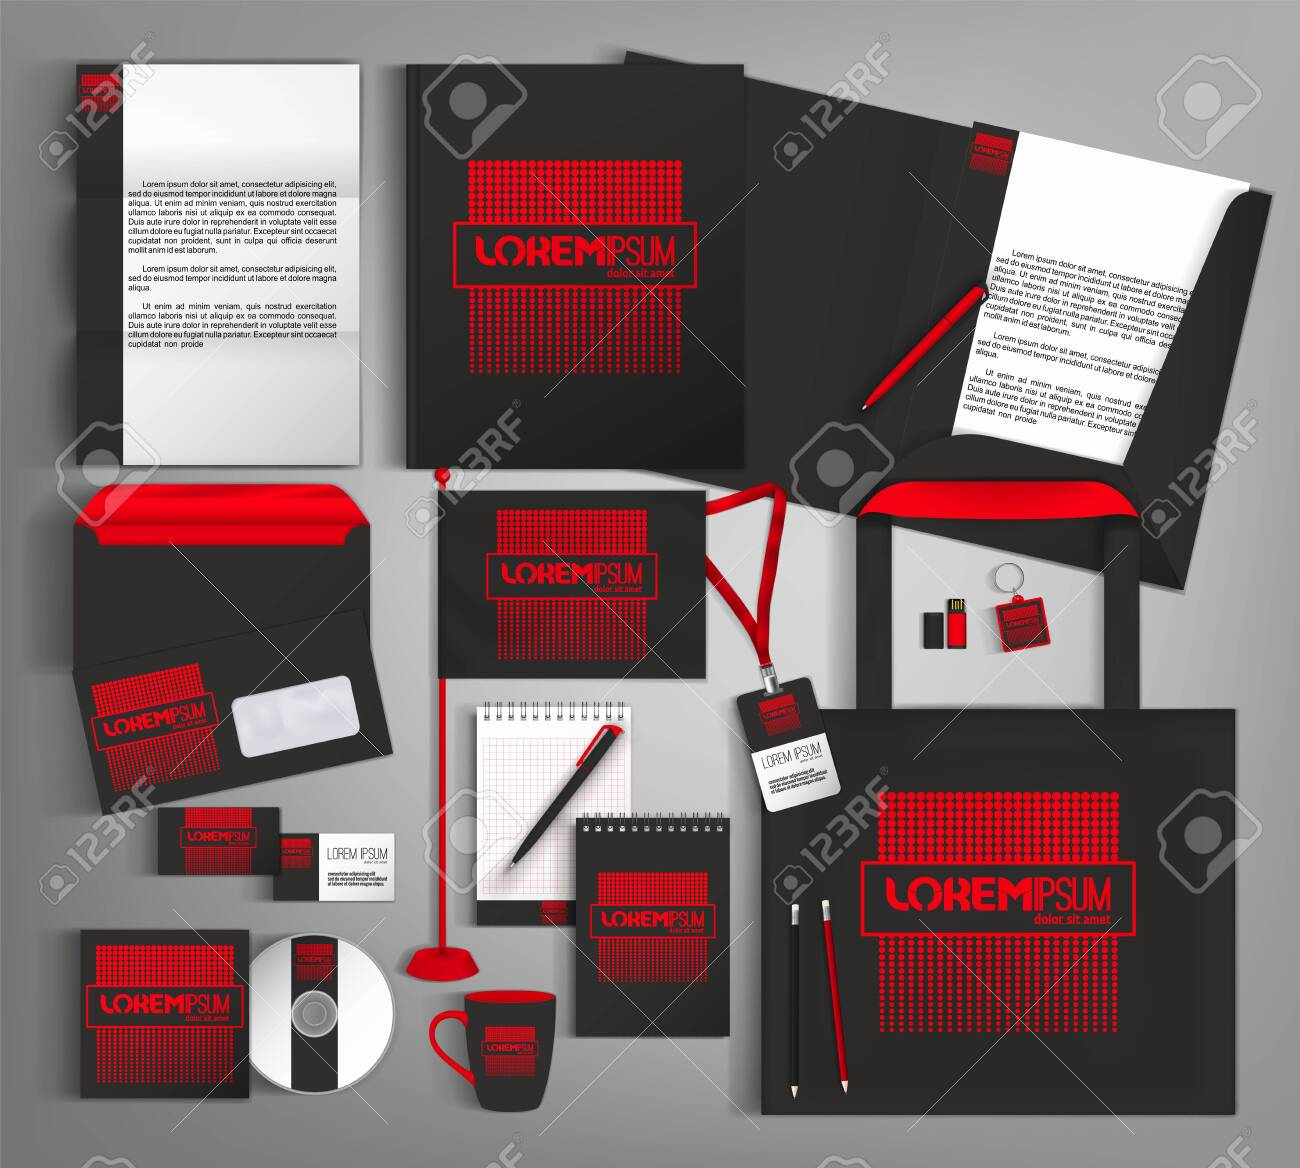 Black and red trendy corporate identity template design. - 124469292